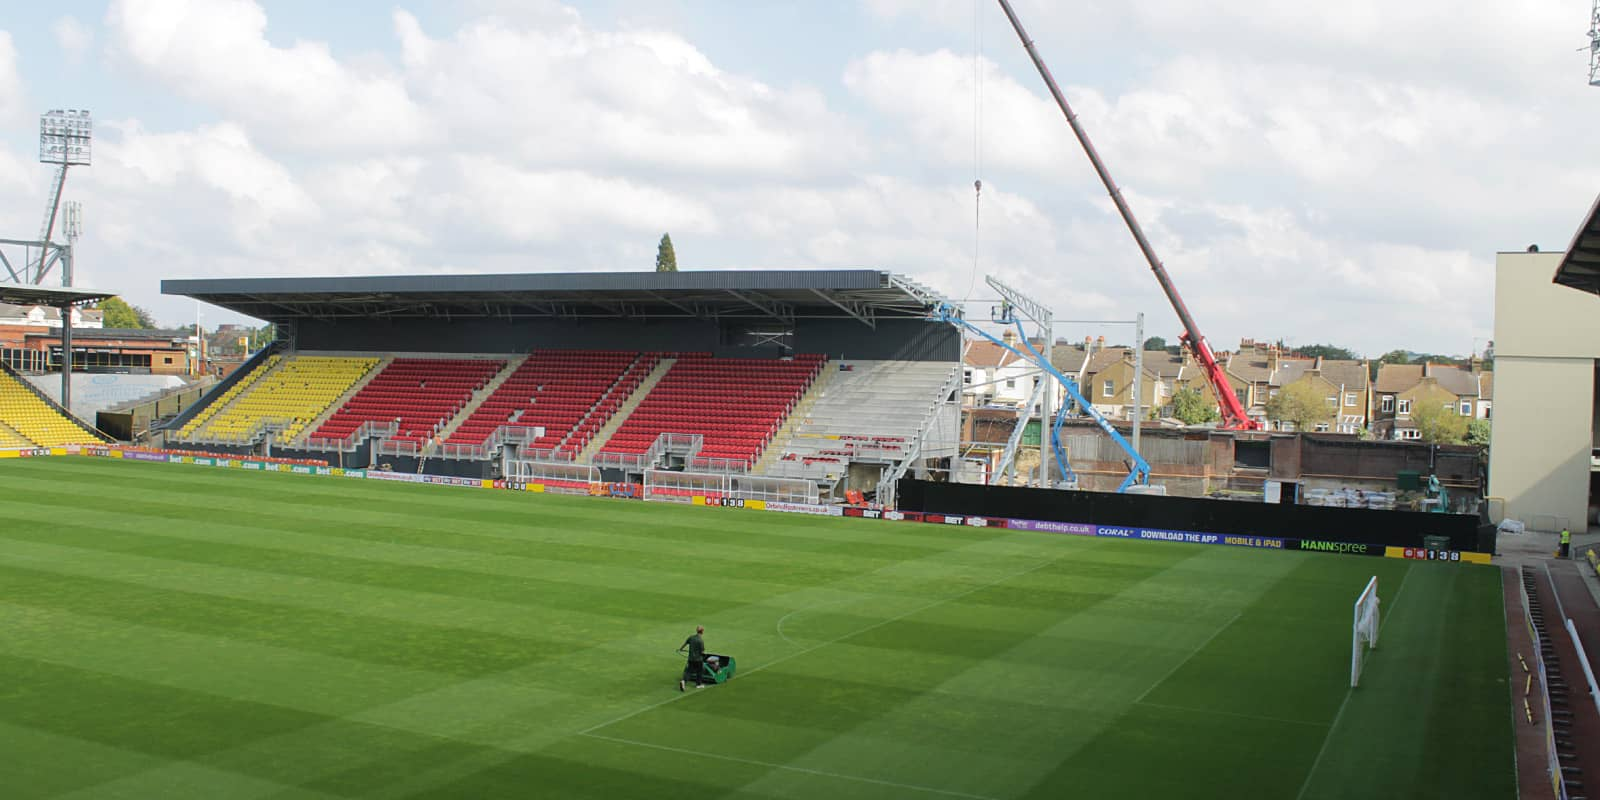 Old Main Stand being demolished with the new Sir Elton John stand under construction